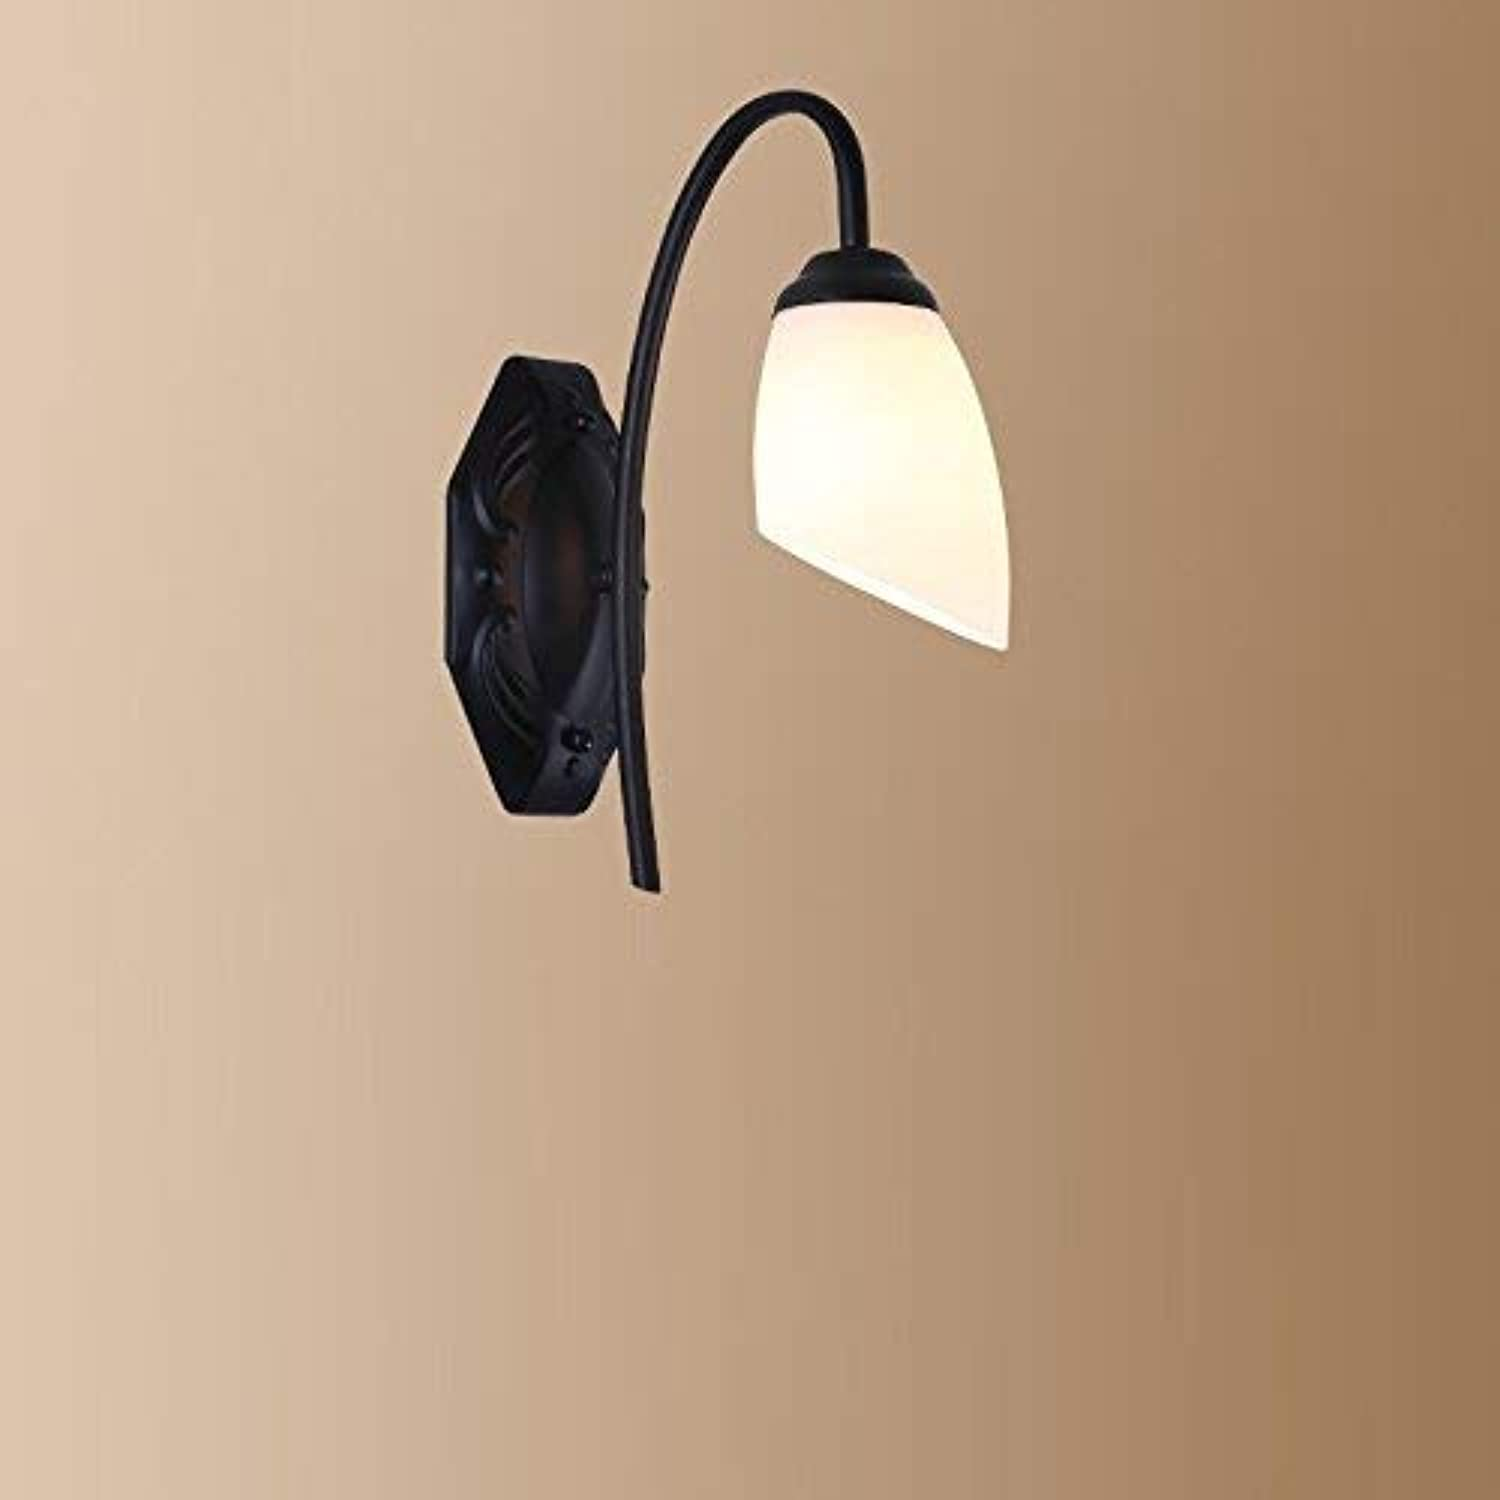 WALL LIGHT HOME Bathroom Sink Basin Tap Brass Mixer Tap Washroom Mixer Faucet Single Handle waterfall full copper hot and cold lowered vanity area with sink faucet Chrome